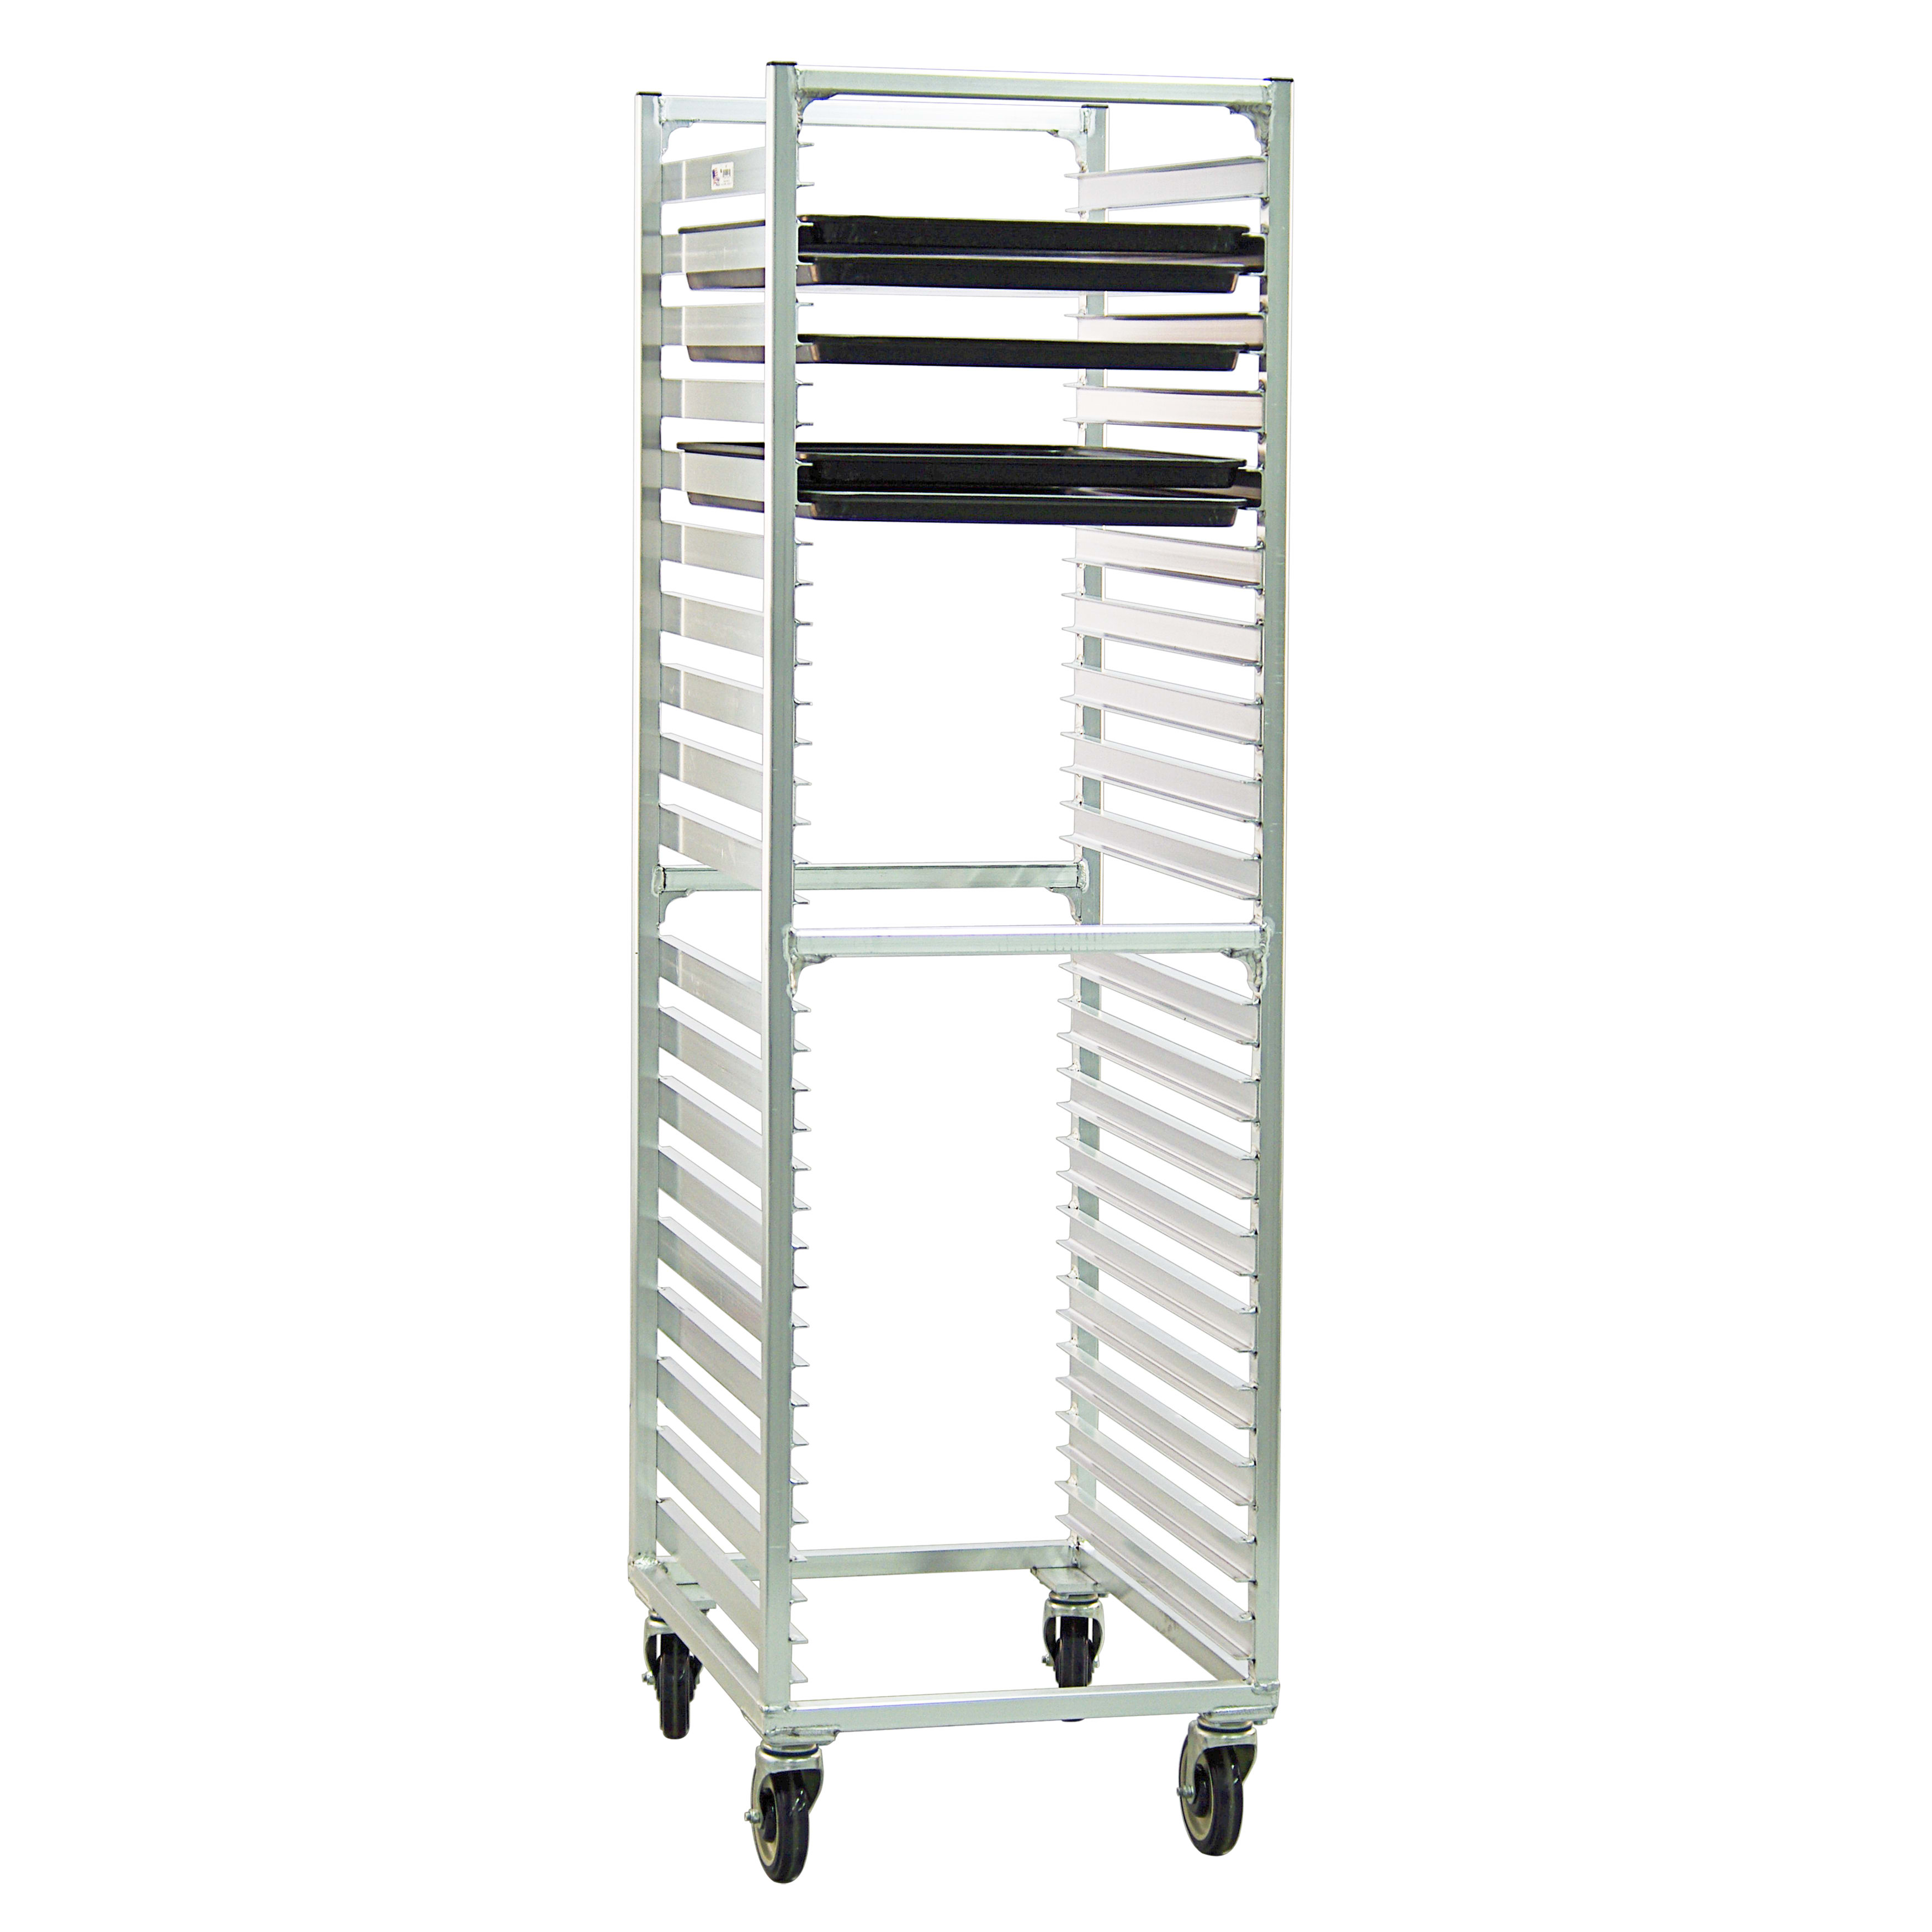 New Age 1461 20.69W 38 Bun Pan Rack w/ 1.5 Bottom Load Sl...